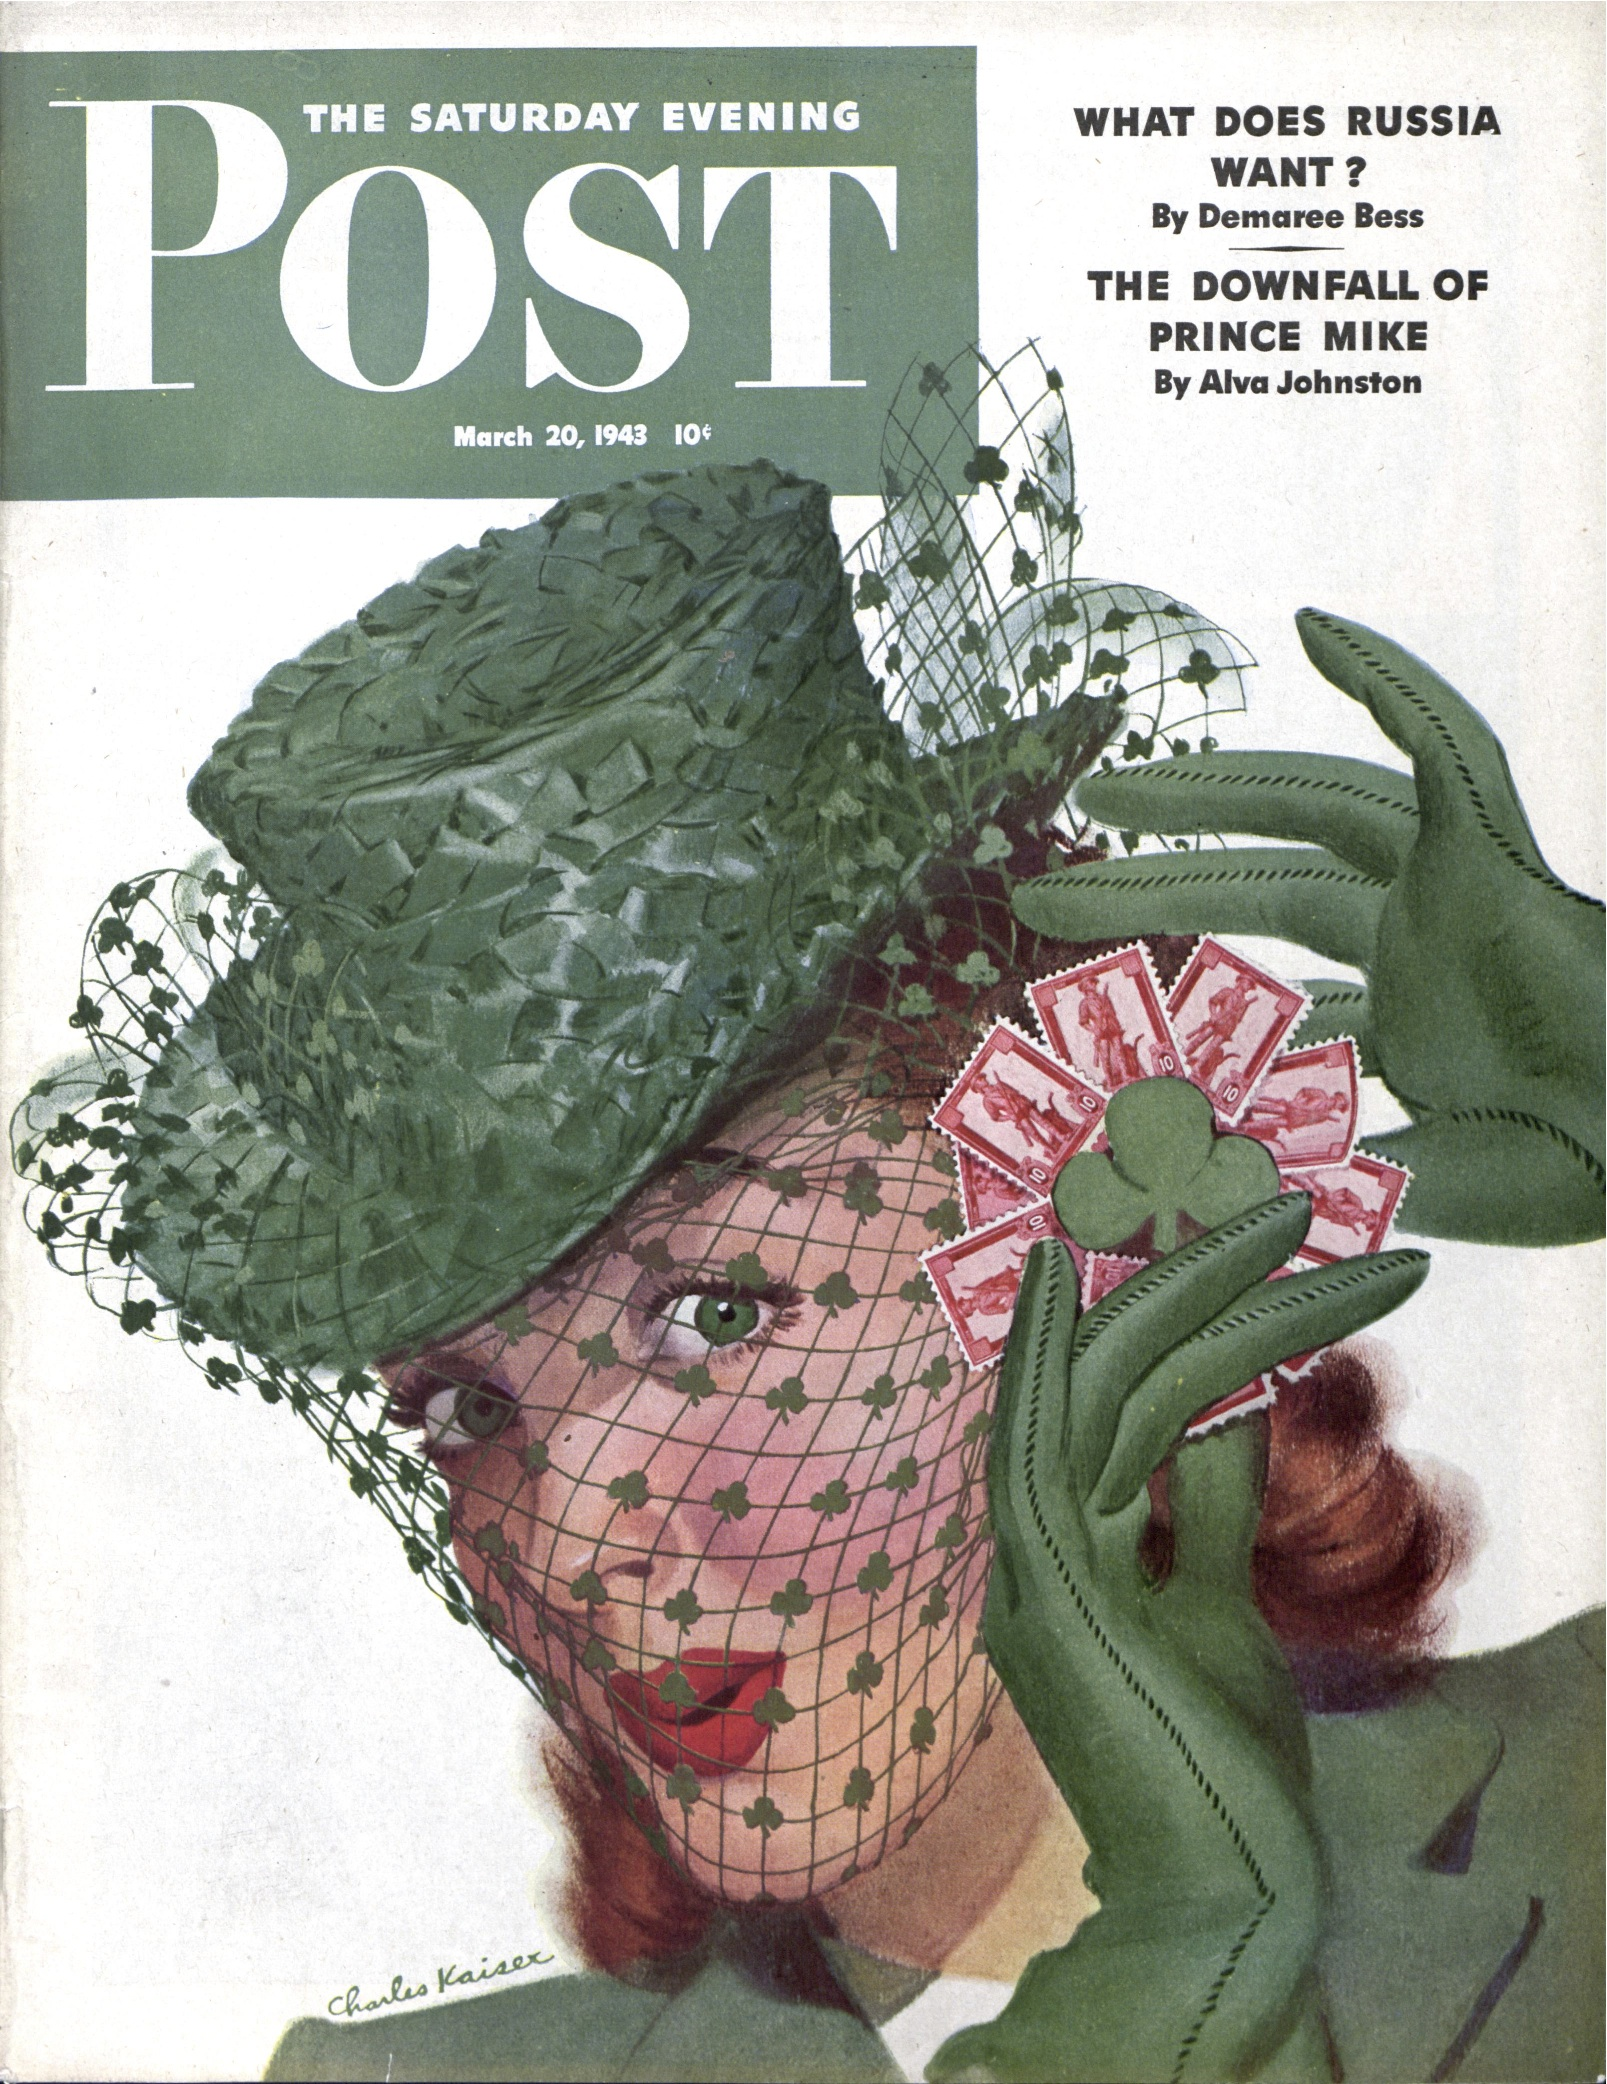 The Saturday Evening Post - published March 20, 1943